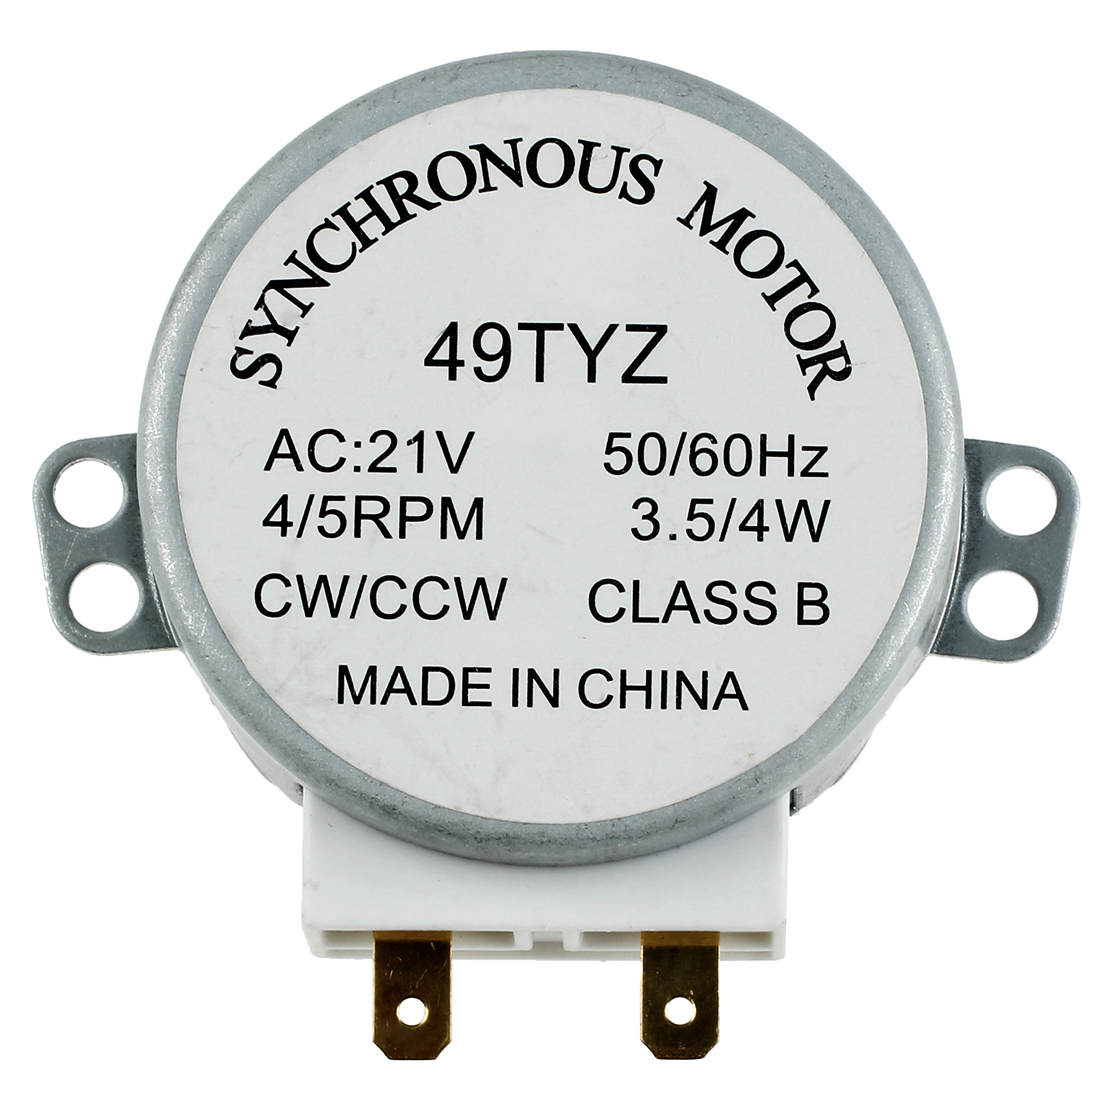 Mini Microwave Oven Turntable Turn Table Synchronous Motor 3W 5/6RPM AC 21V 50/60Hz 4/5 RPM 49TYZ